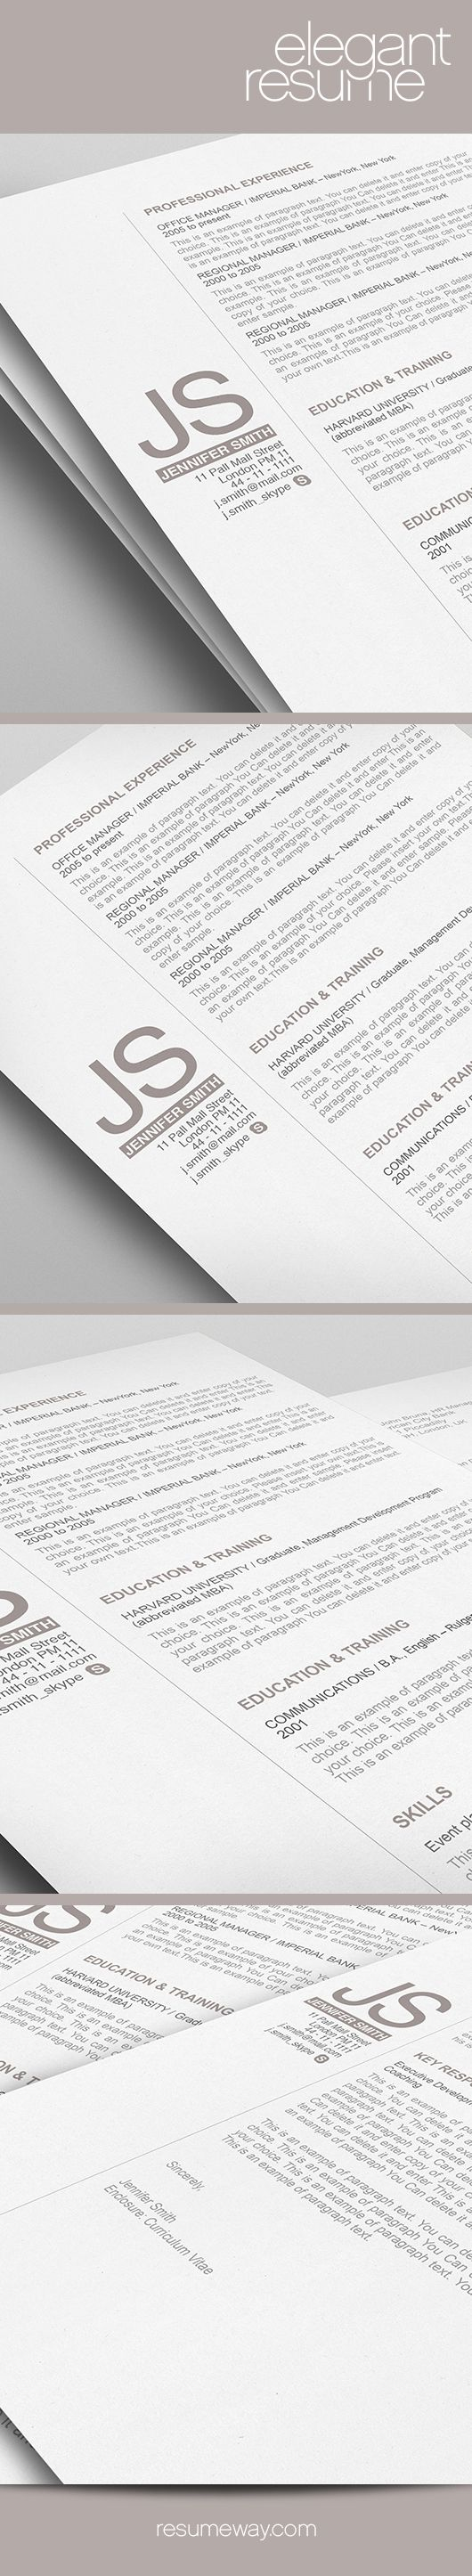 150 best Resume & CV Designs images on Pinterest | Resume templates ...